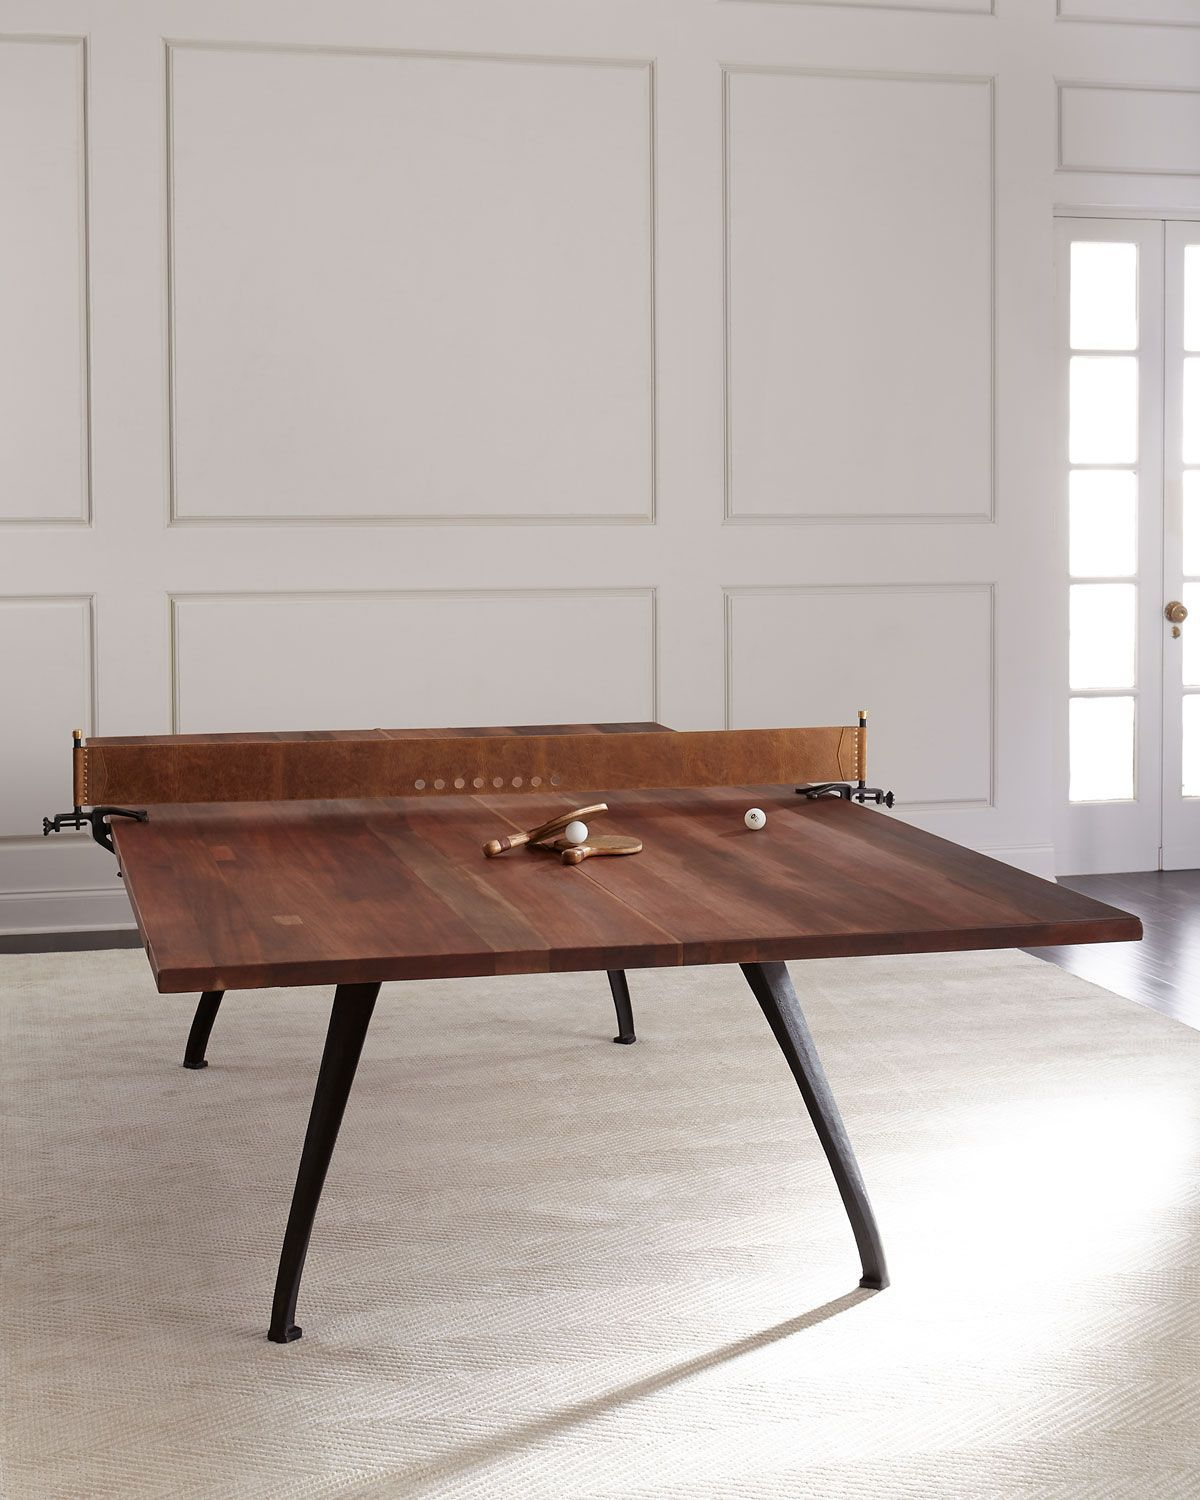 PIcard Table Tennis Table